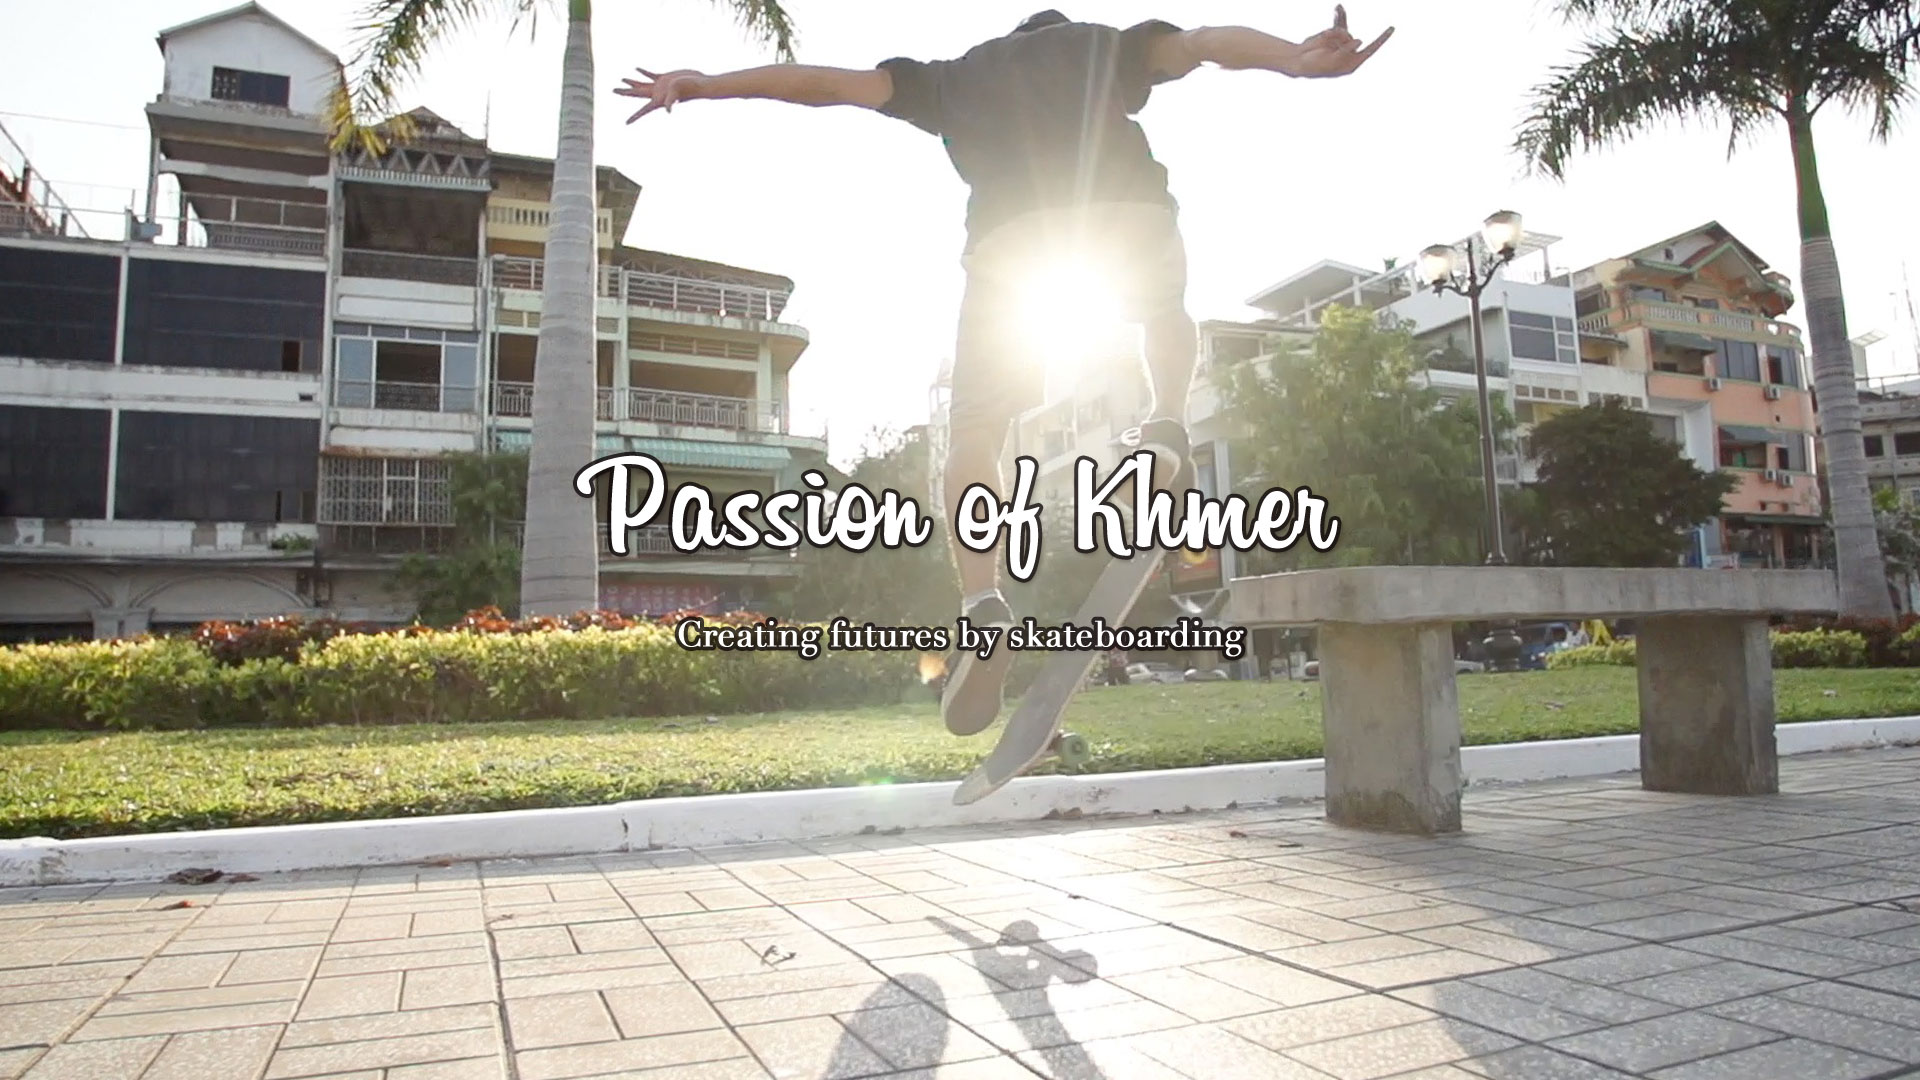 Passion of Khmer